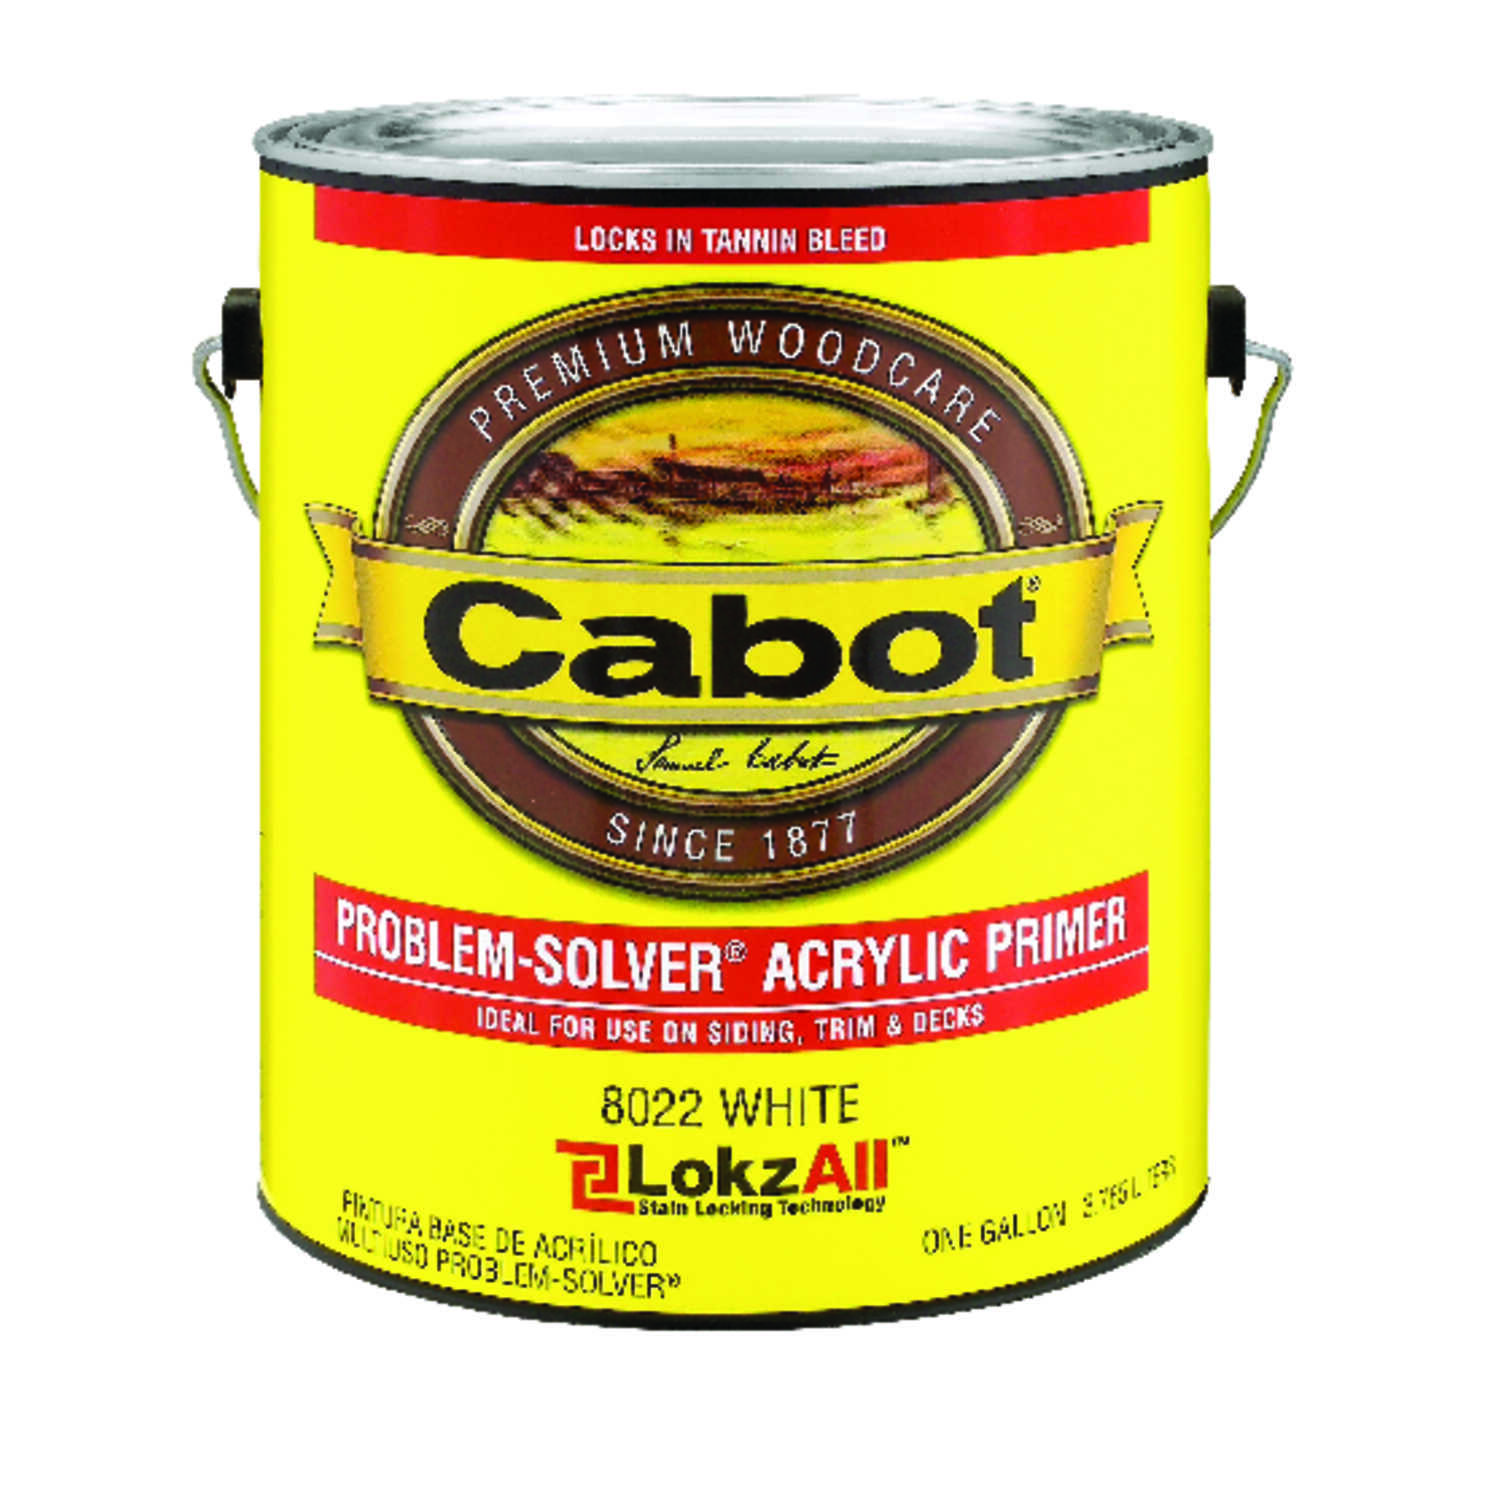 Cabot  Problem-Solver  Solid Color  White  Acrylic  For Wood 1 gal. Primer